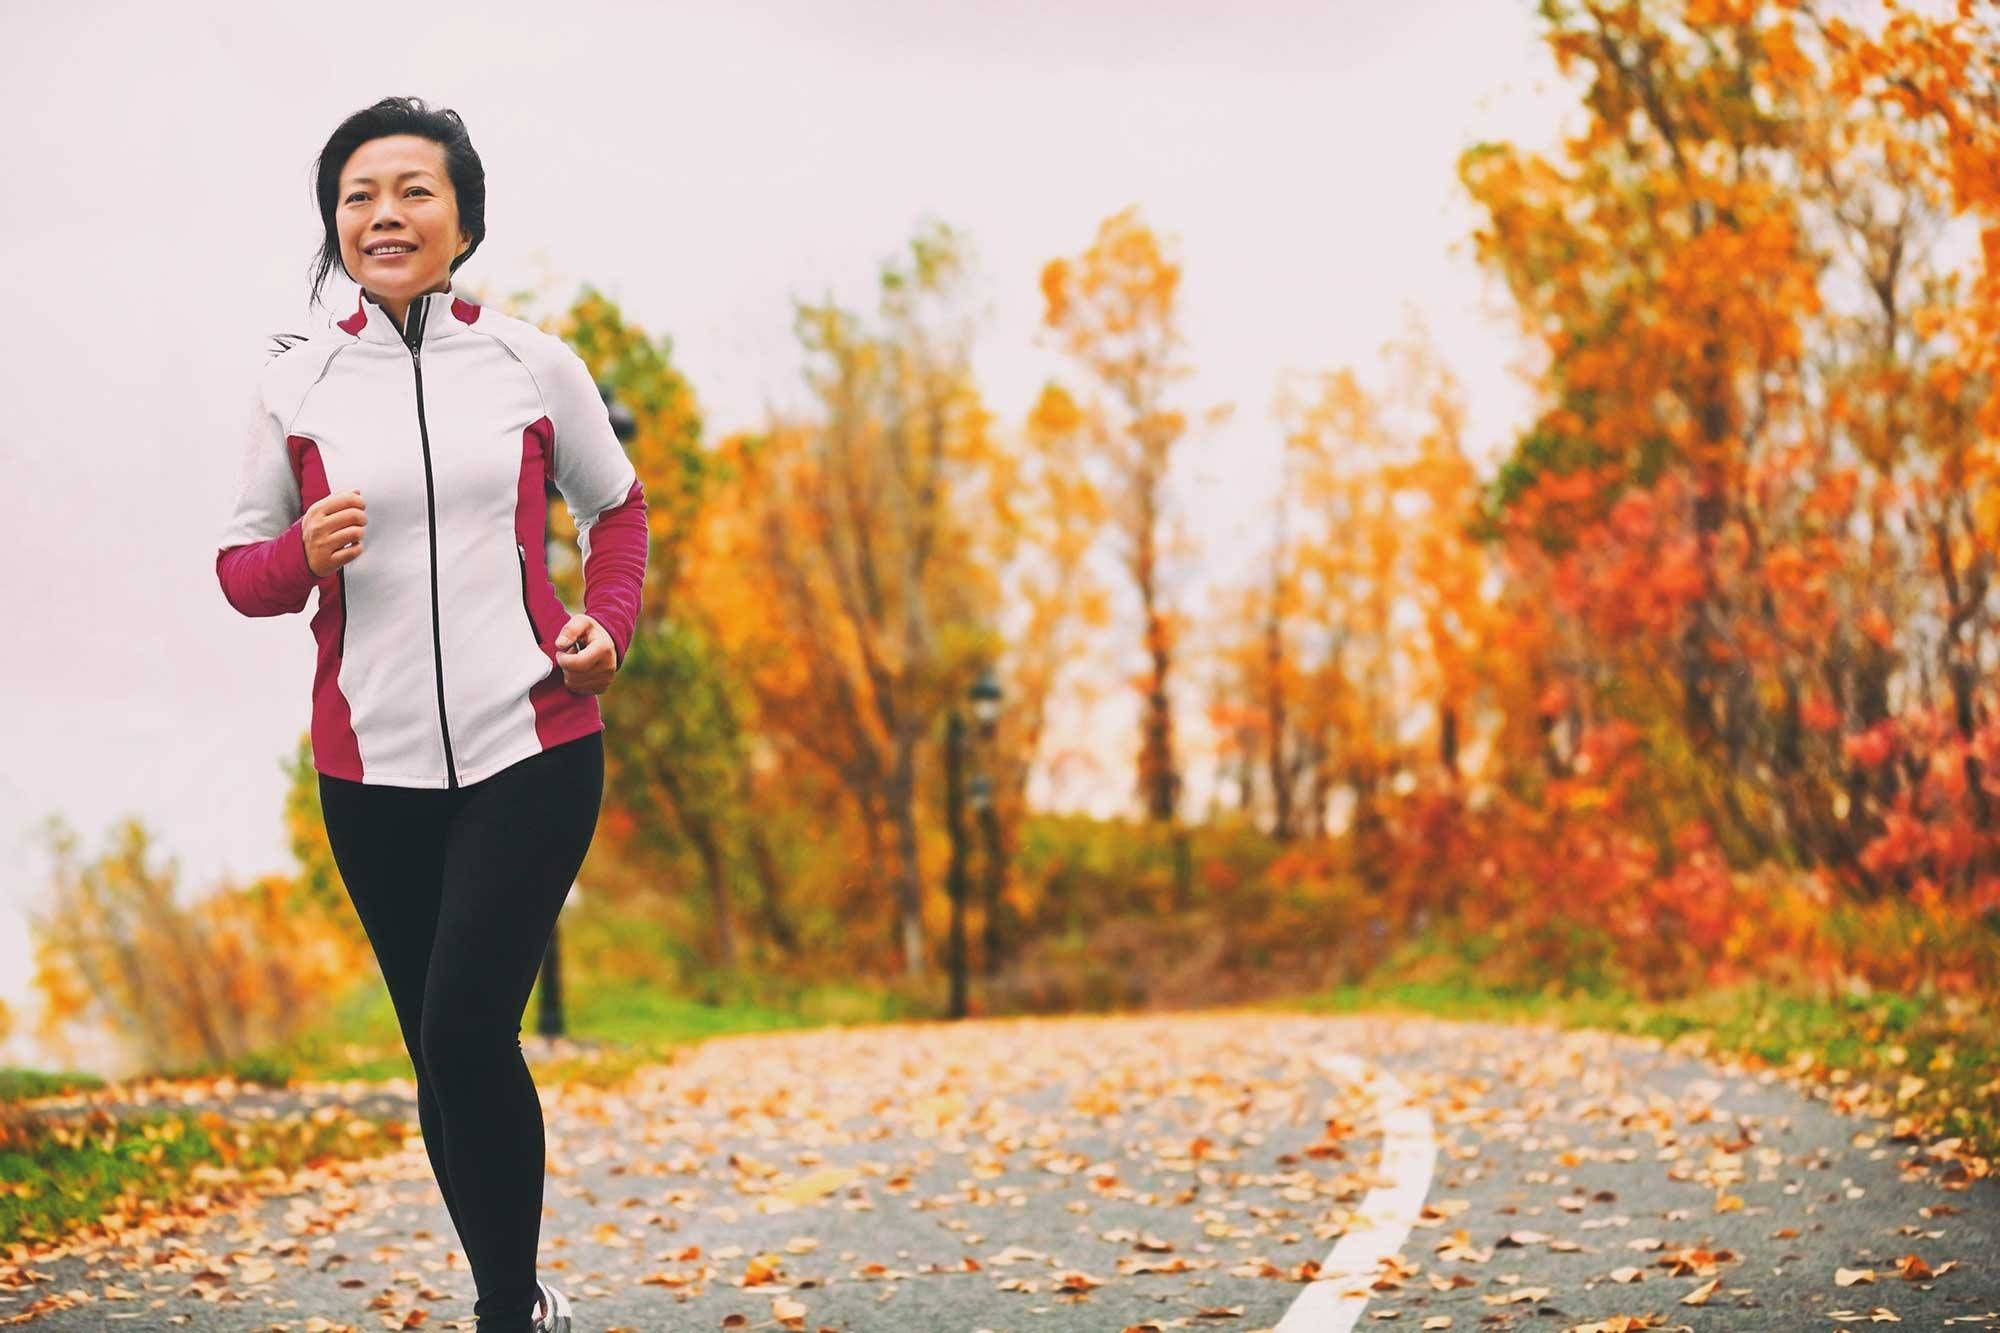 A woman runs on a running path with trees in fall colors behind her.